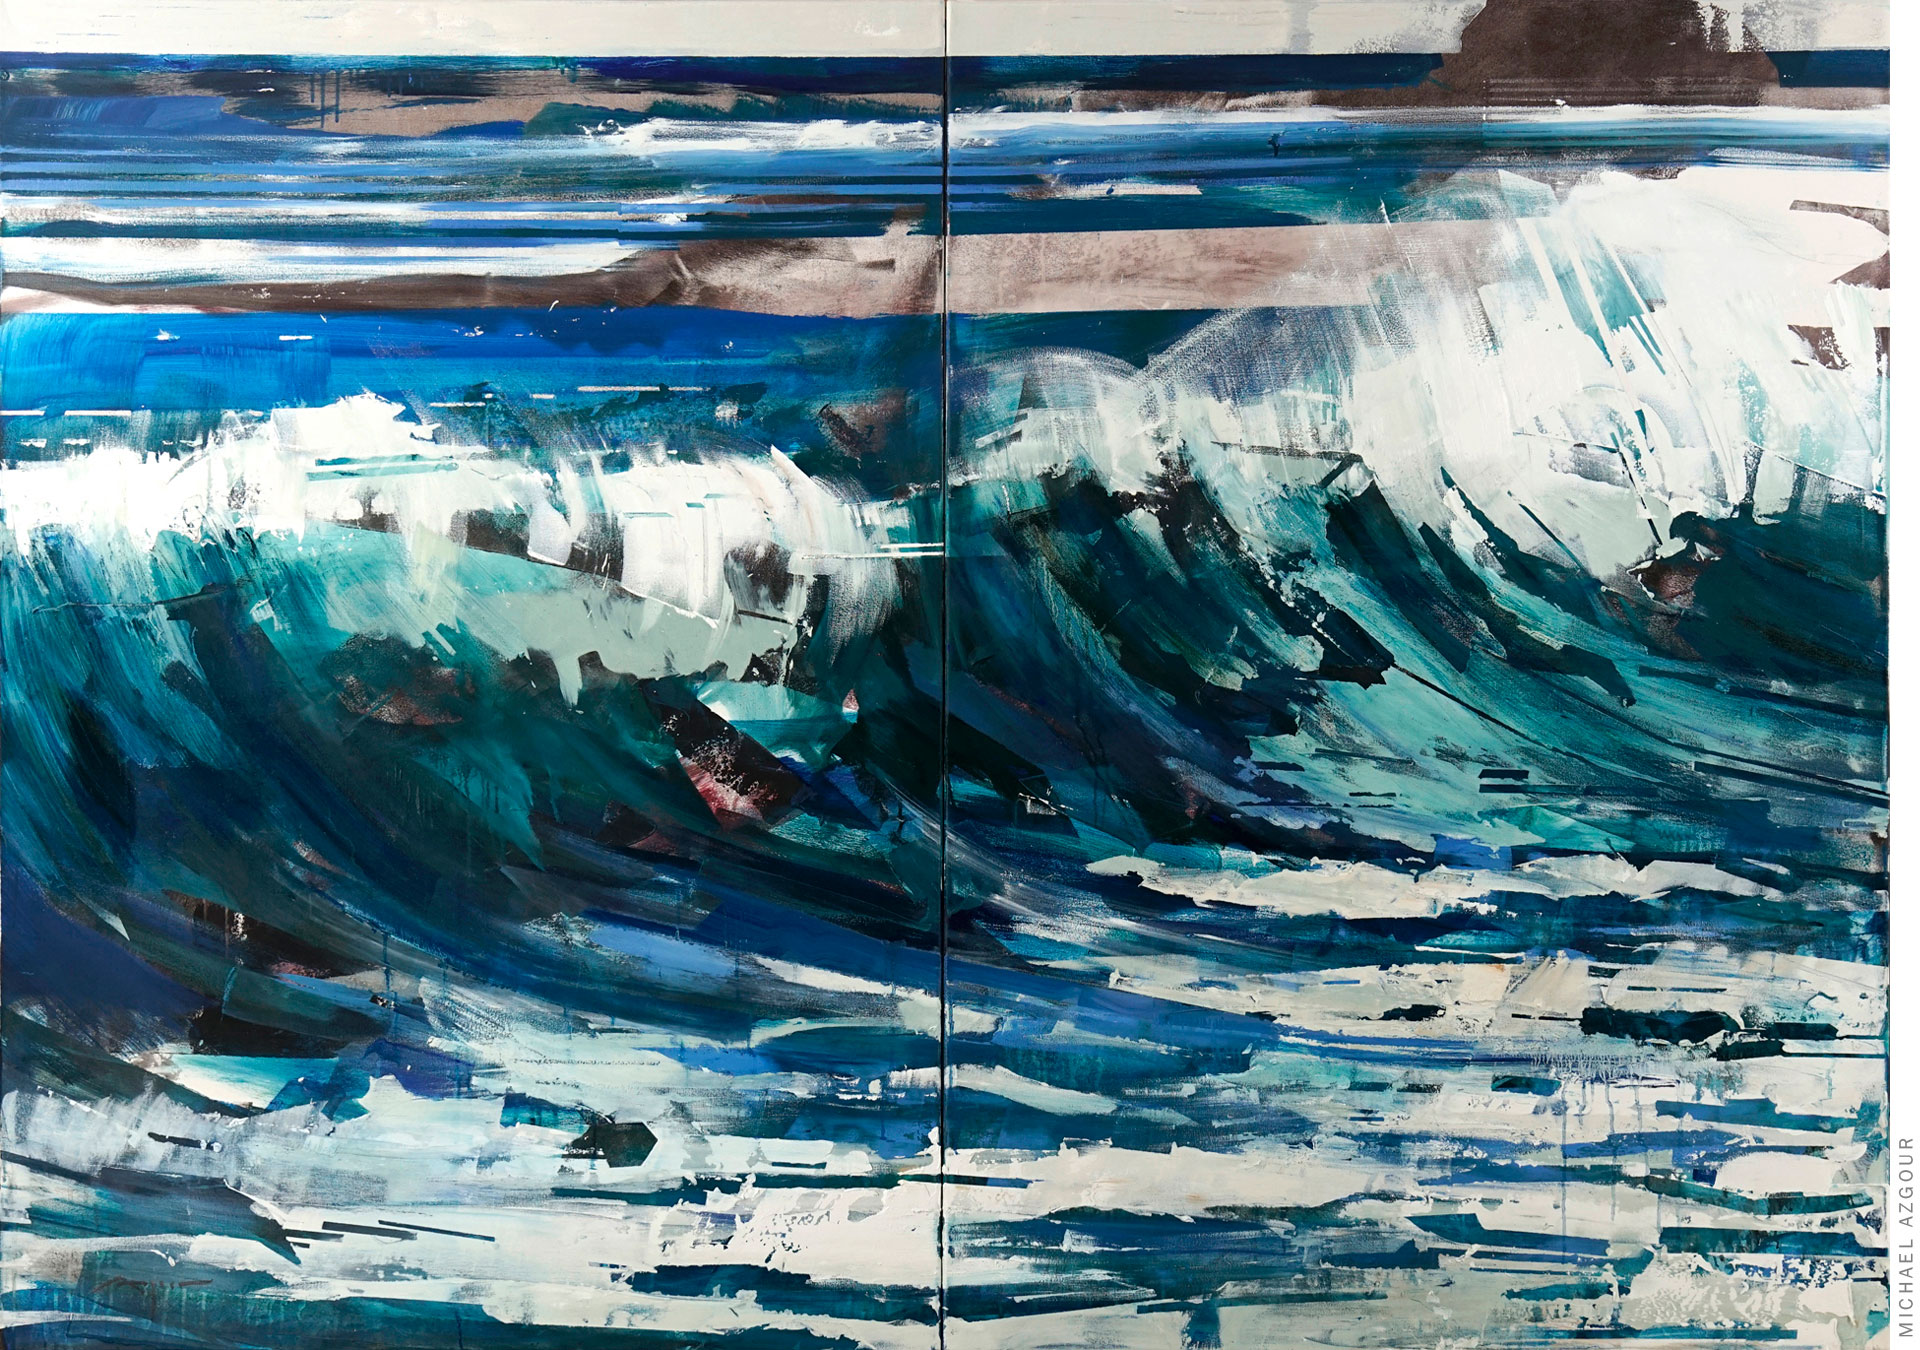 Expressive painting depicting a crashing wave on the ocean shore, titled Wave 2; by California artist Michael Azgour